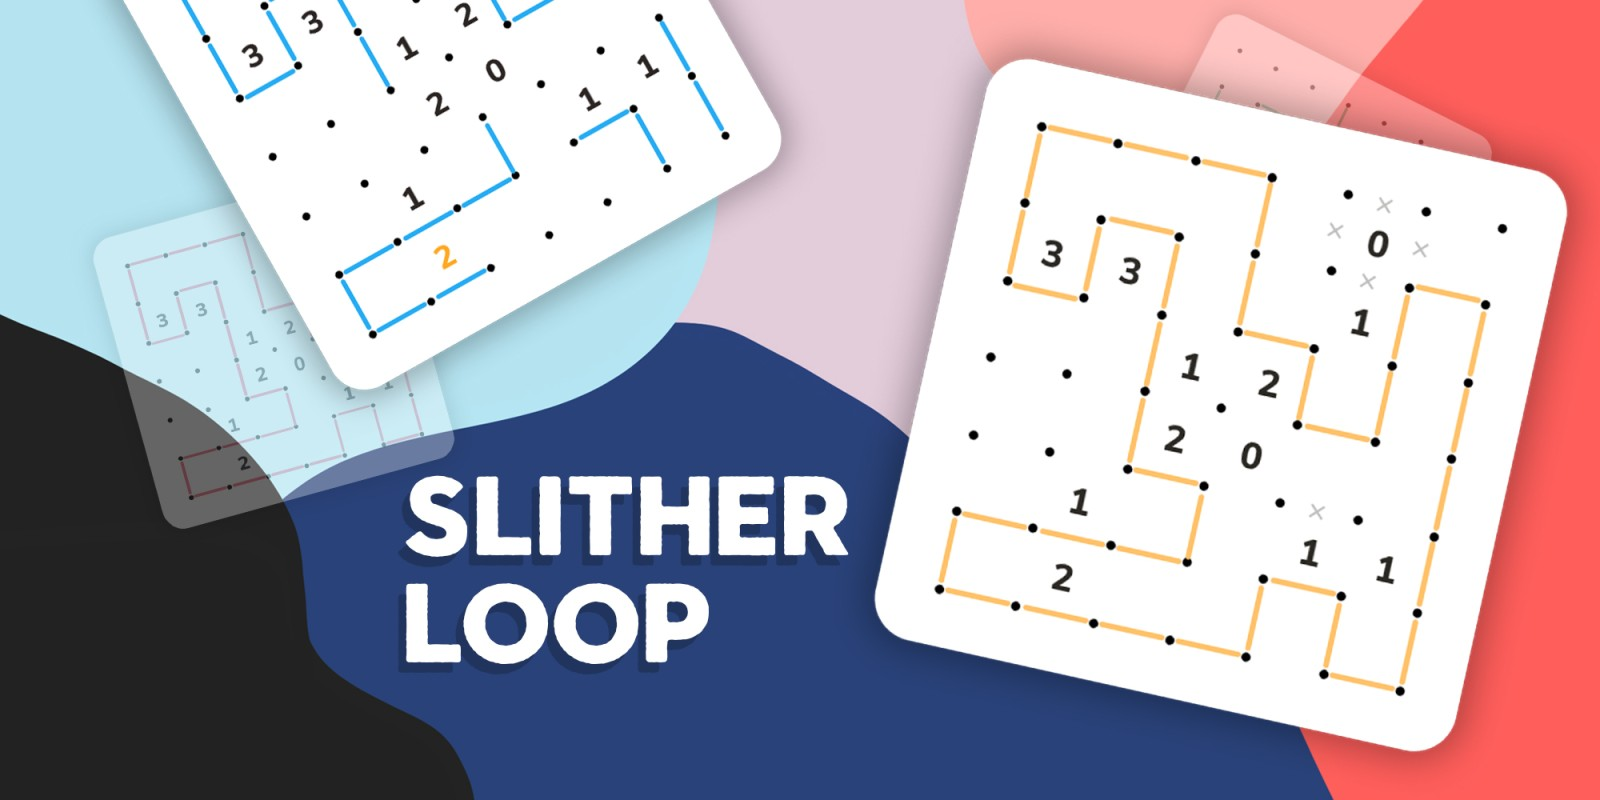 Slither Loop